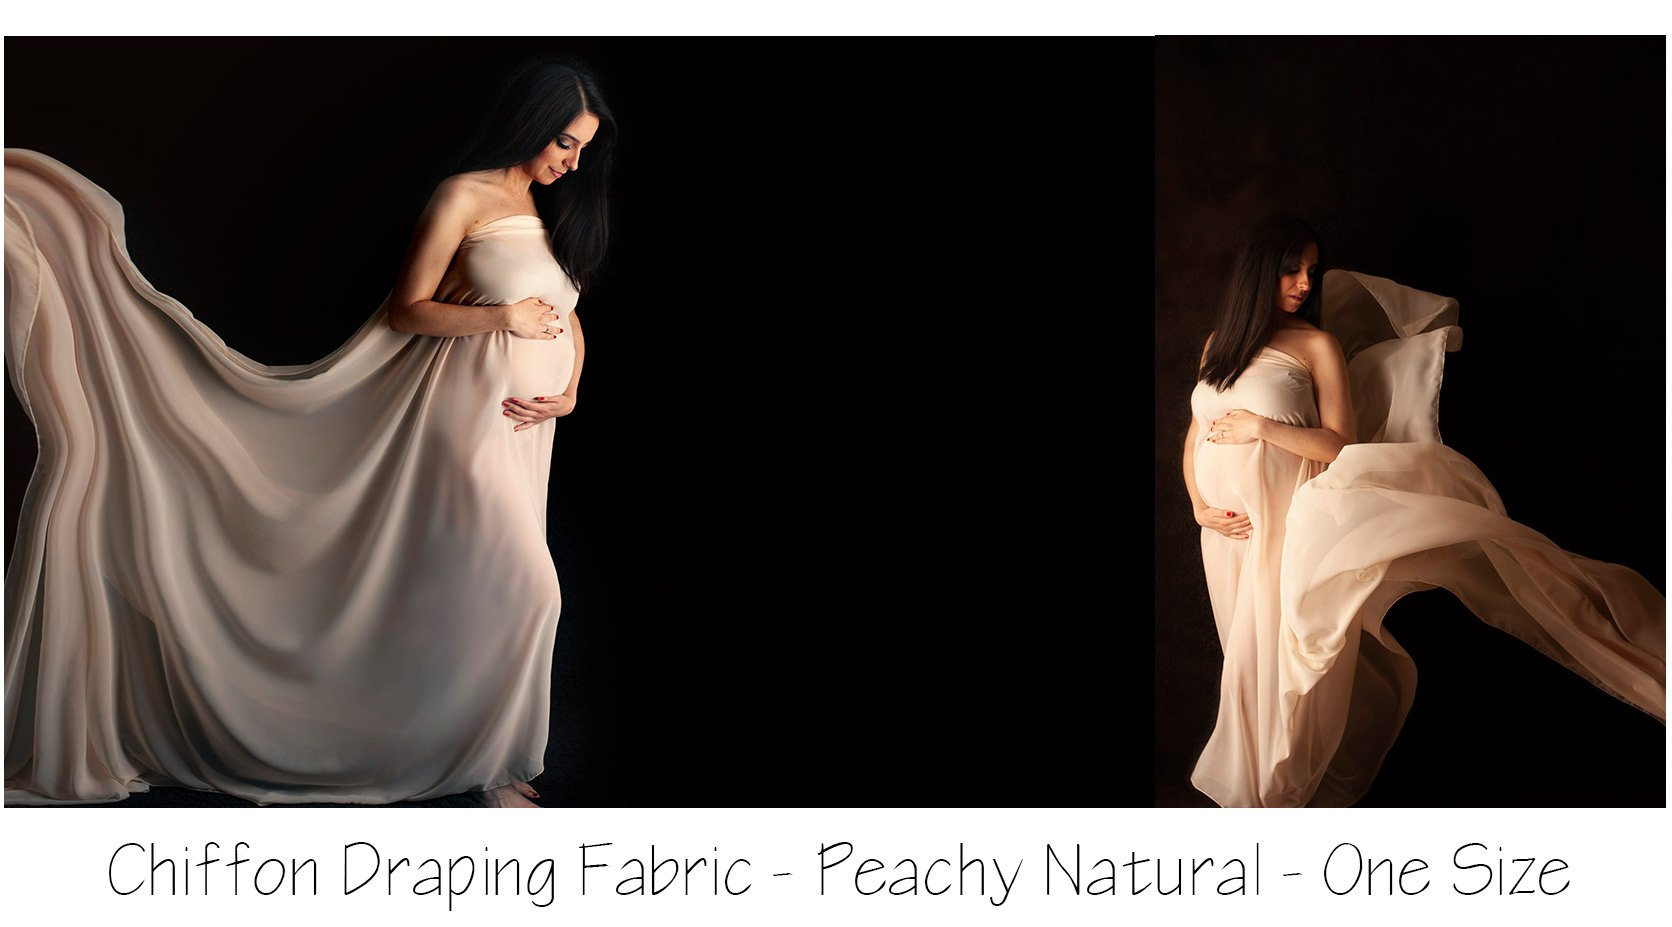 Maternity Image: pregnant woman posed with flowing chiffon fabric